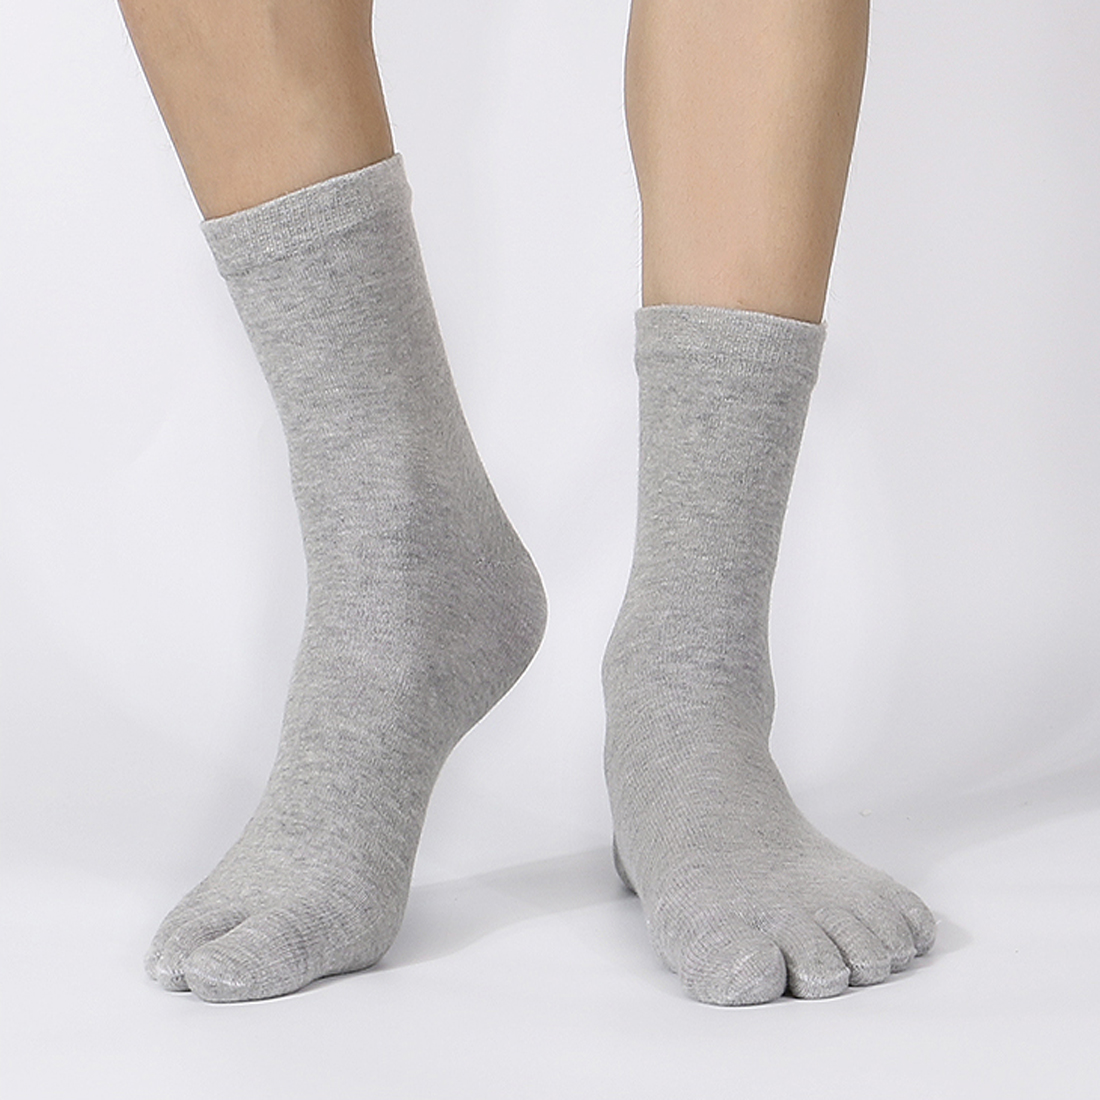 Hot Sale Soft 1 Pair Winter Autumn Warm Comfortable Men Top Quality Women's Guy Five Finger Pure Soft Cotton Toe Socks